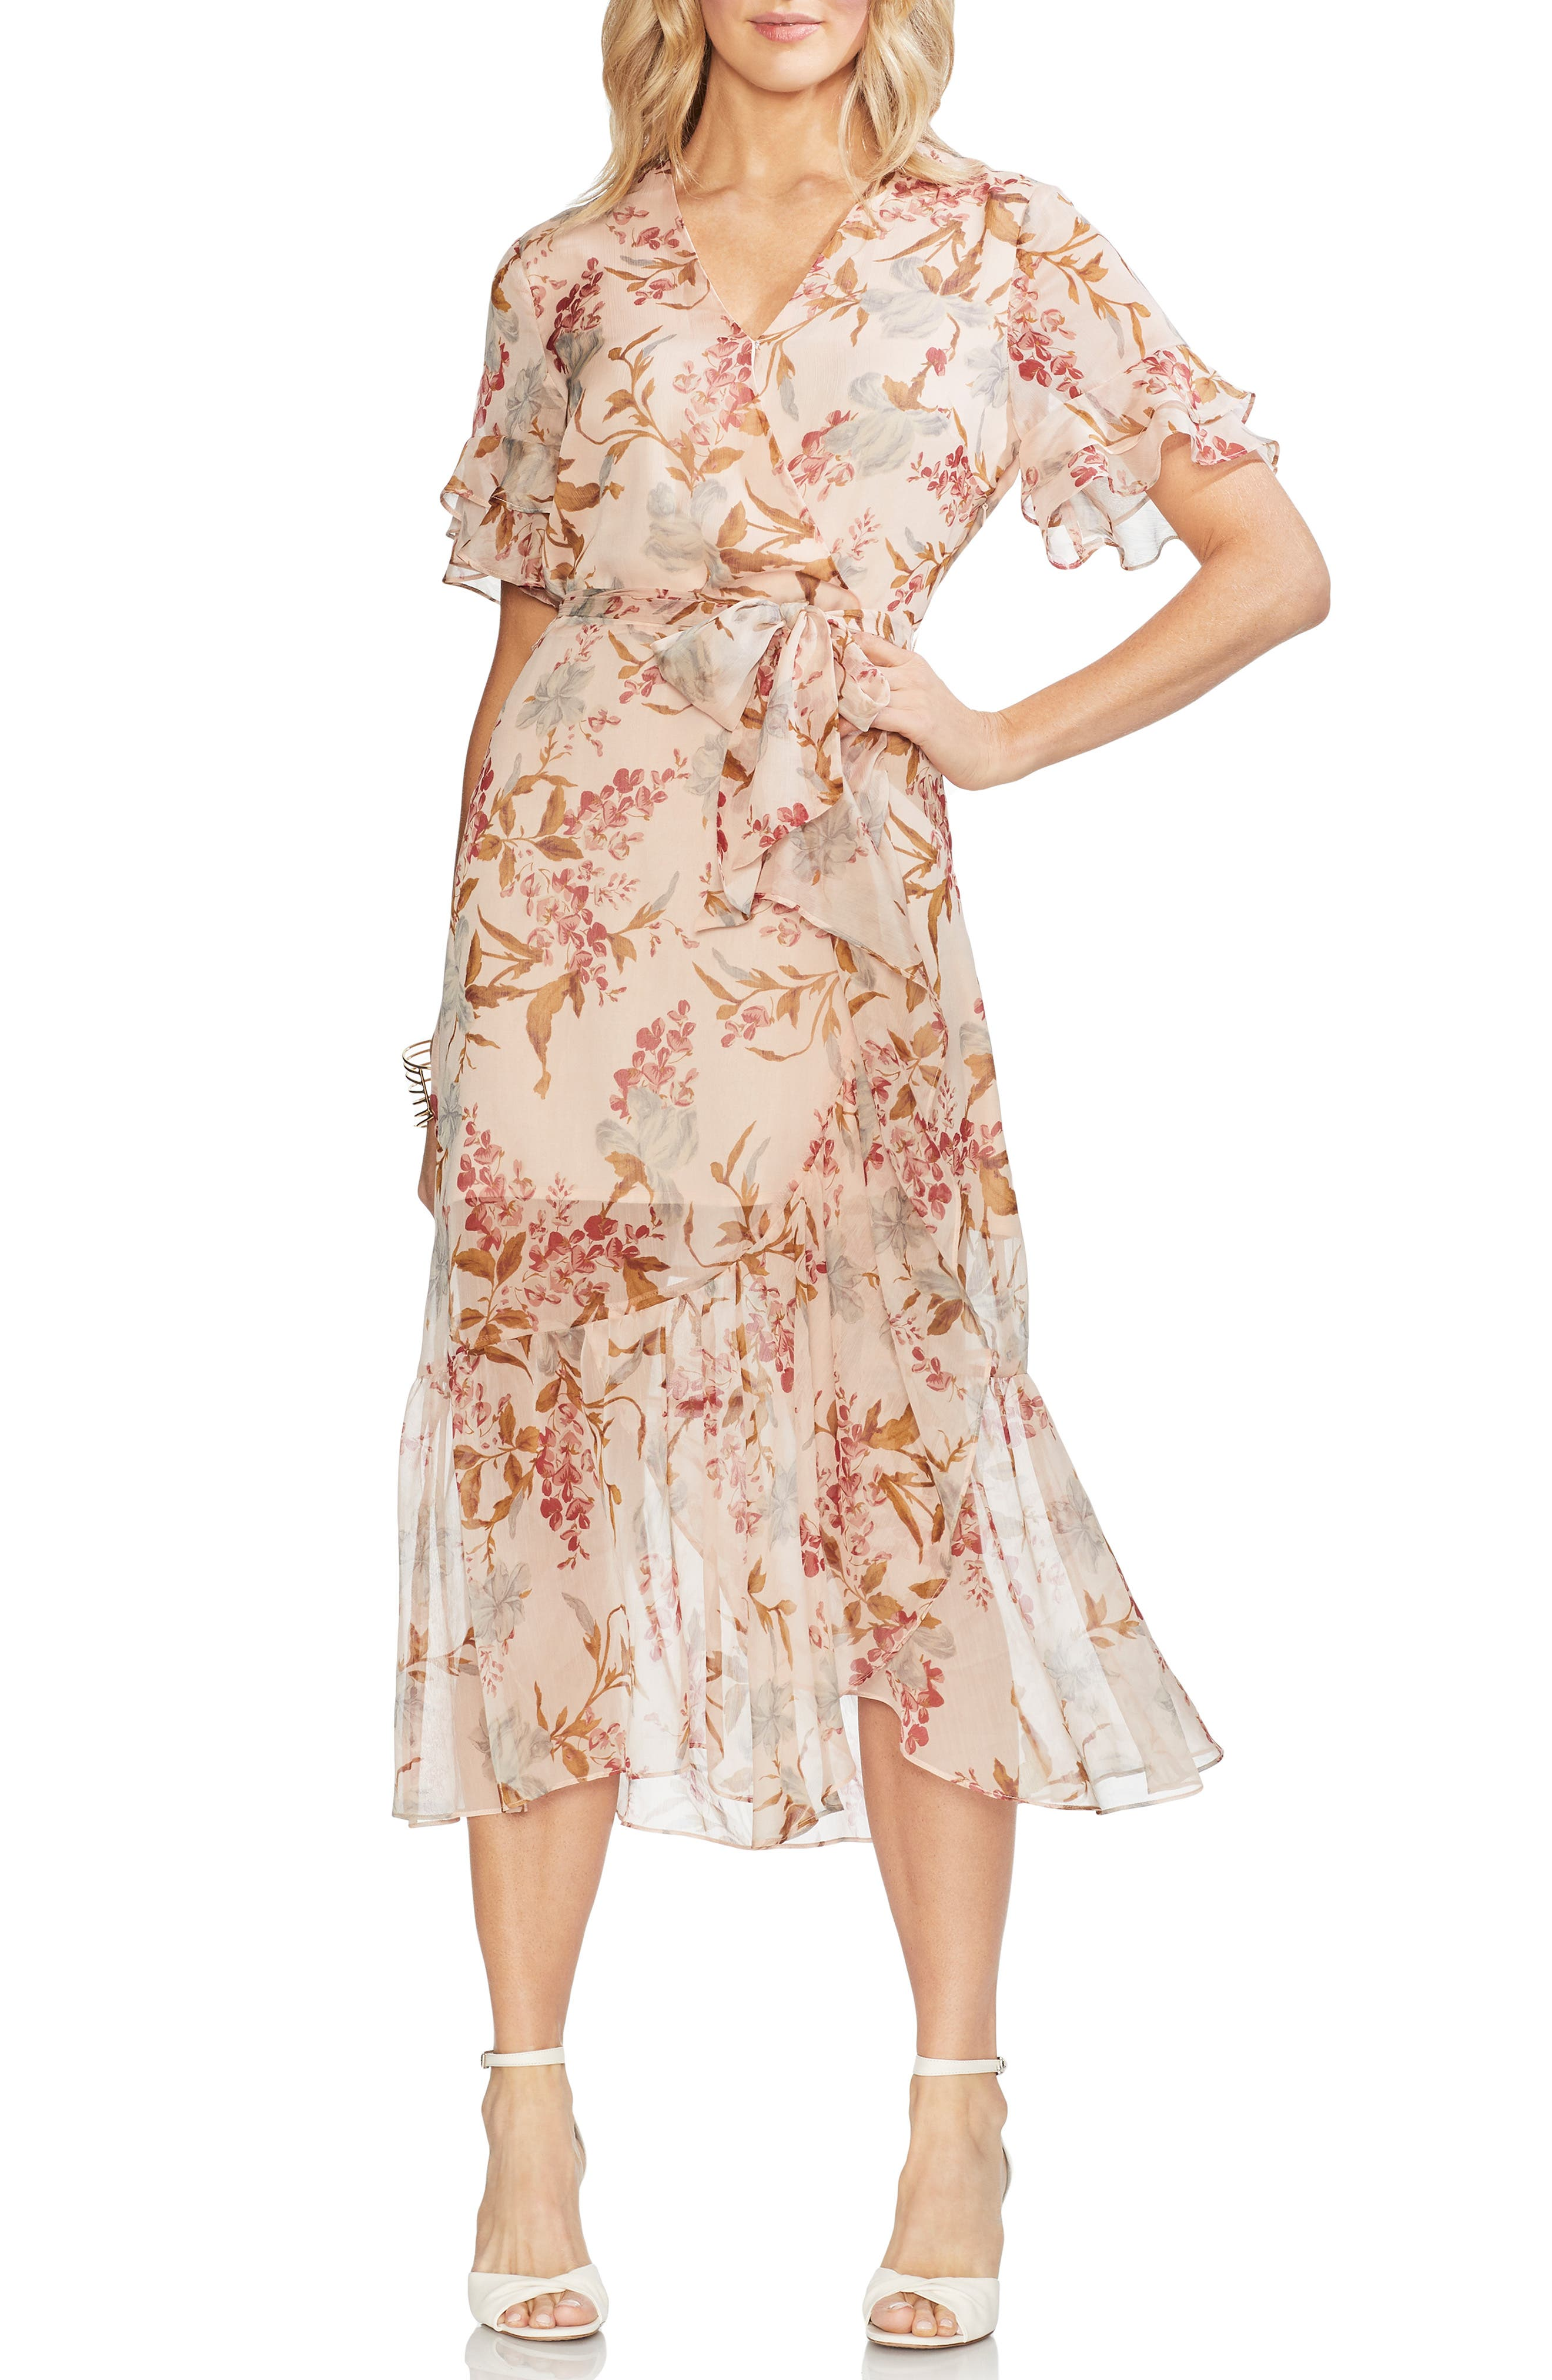 1930s Dresses | 30s Art Deco Dress Womens Vince Camuto Wildflower Tiered Ruffle Chiffon Dress Size 8 - Pink $159.00 AT vintagedancer.com